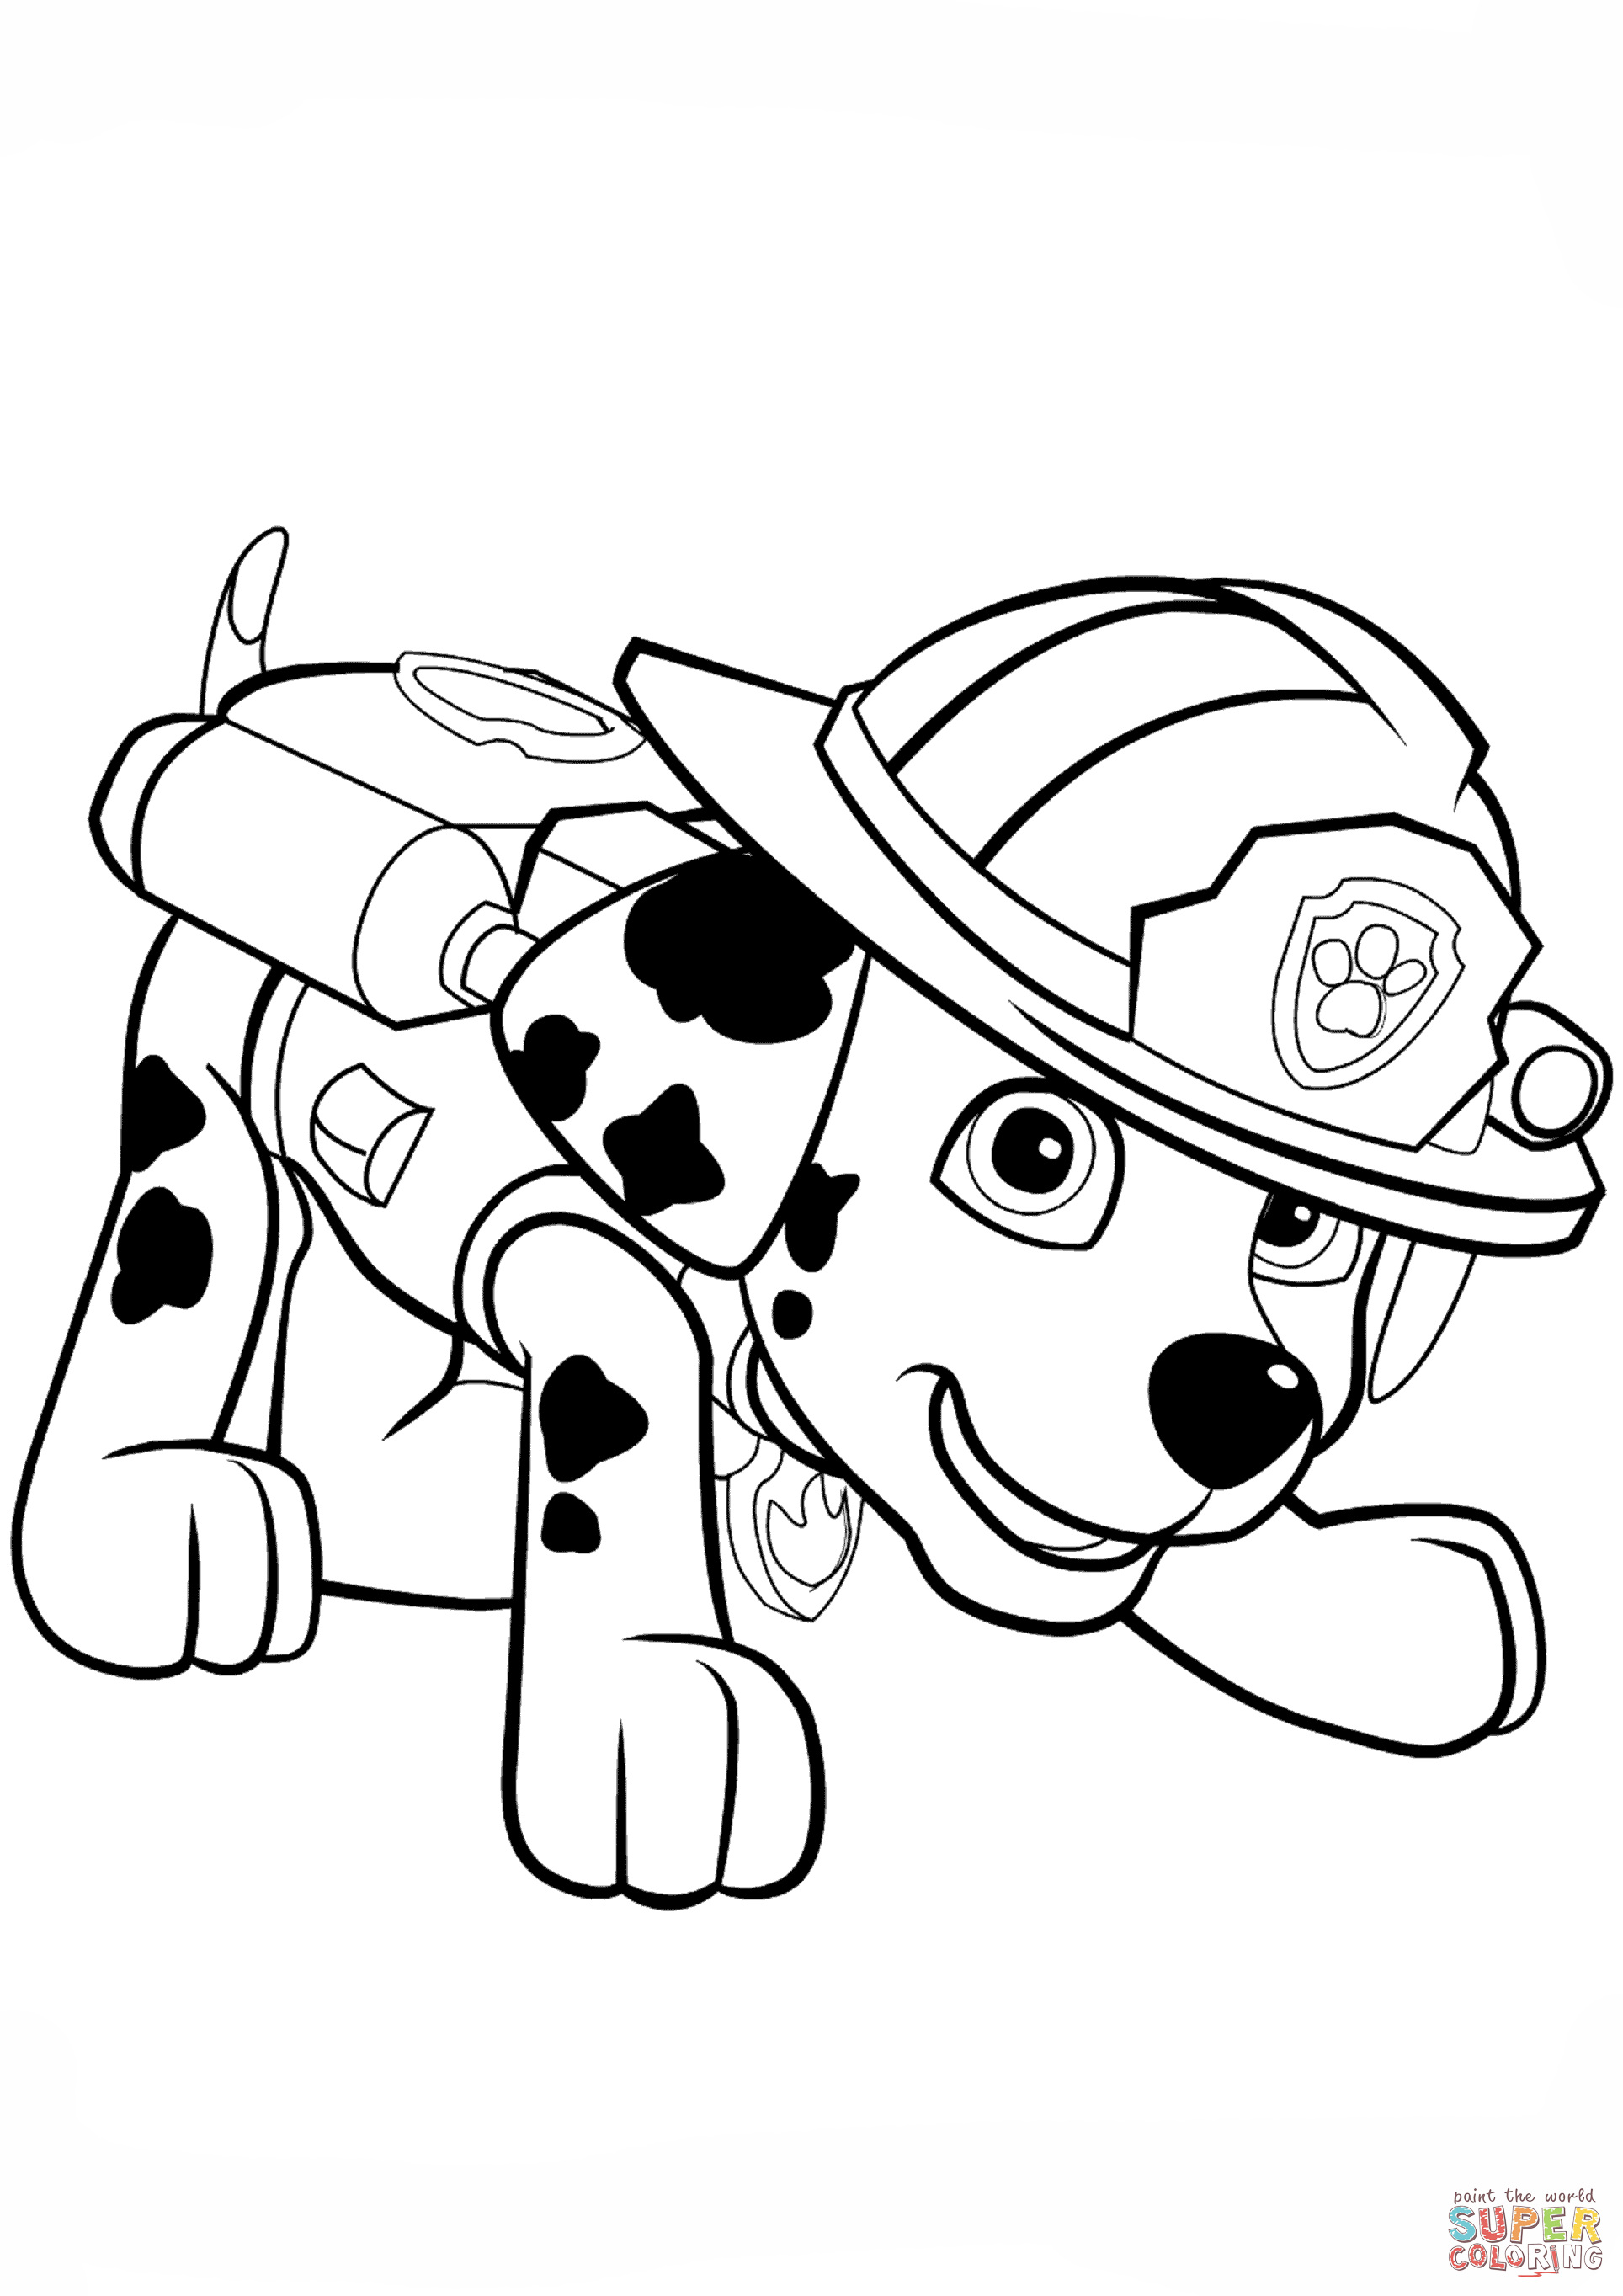 Paw Patrol Coloring Pages Marshall : patrol, coloring, pages, marshall, Patrol, Marshall, Puppy, Coloring, Printable, Pages